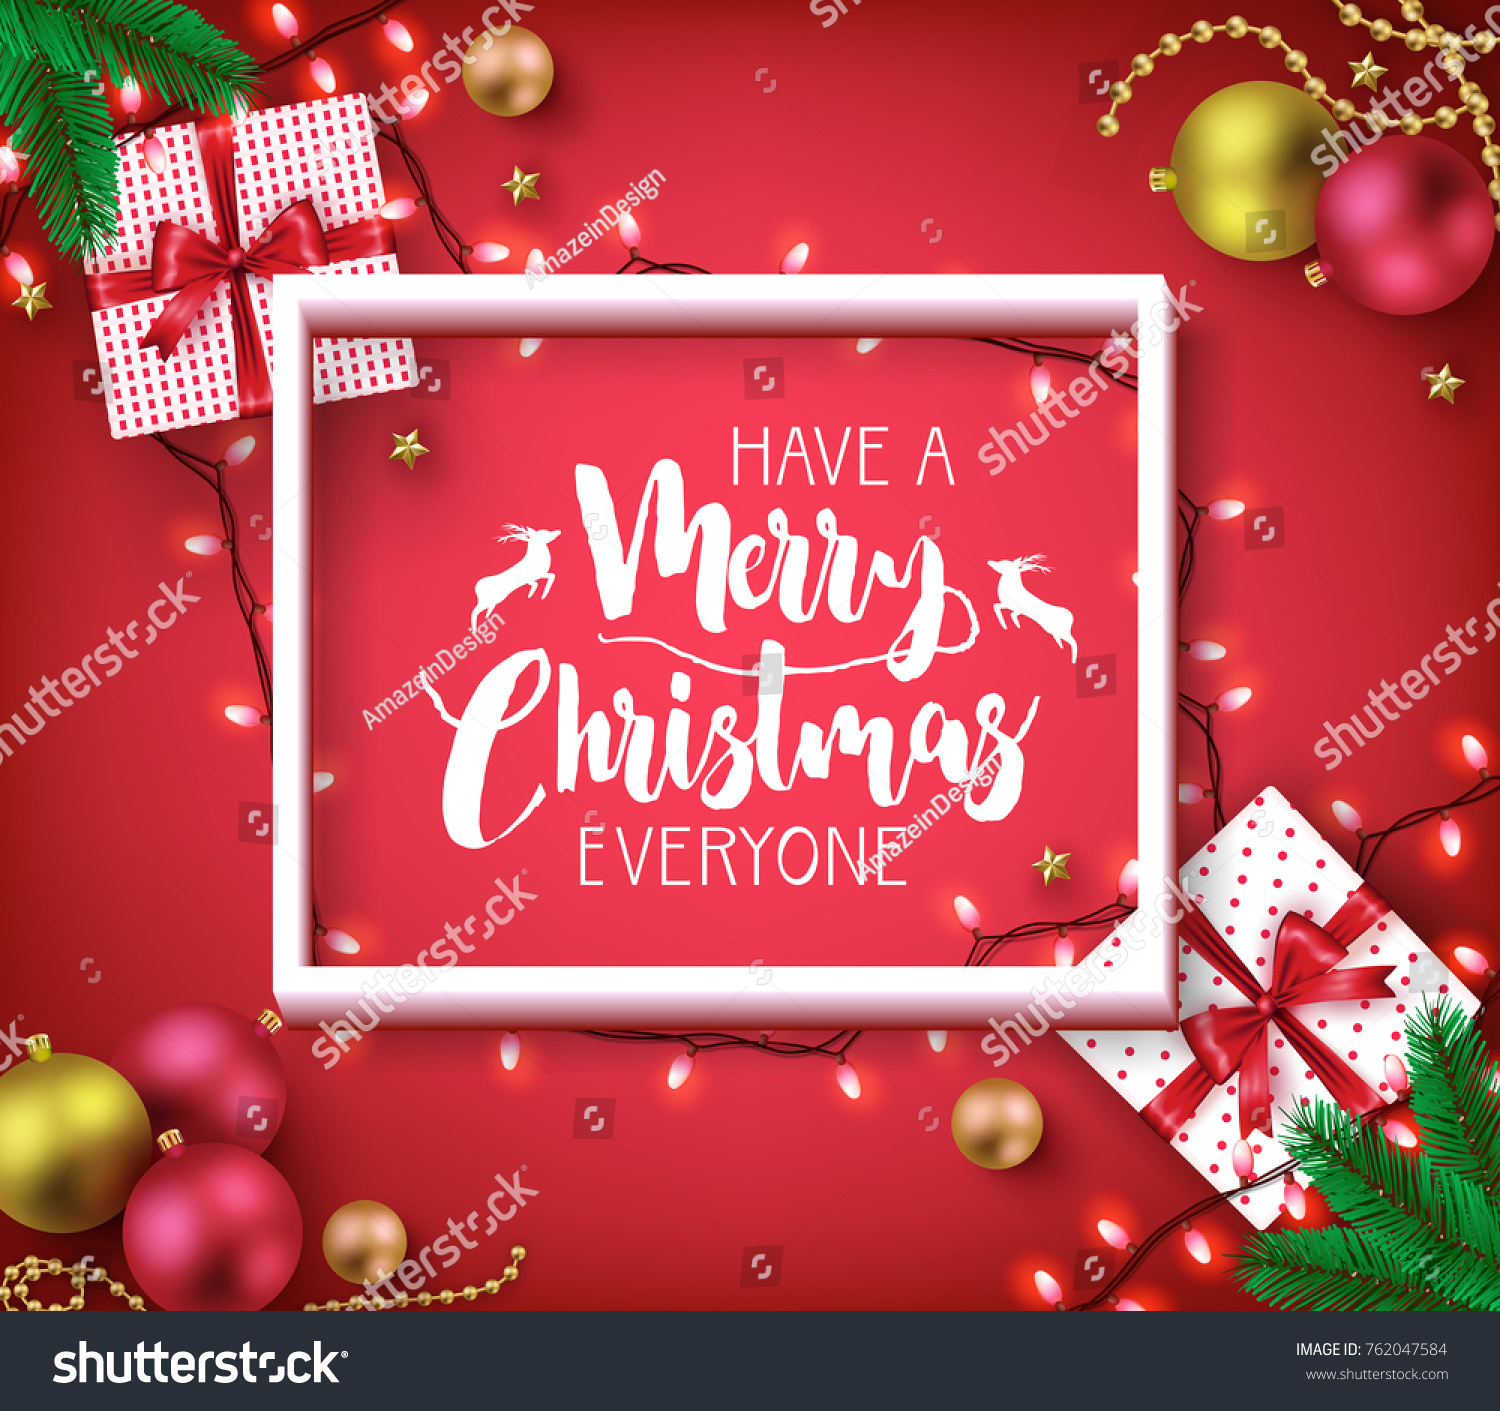 Have Merry Christmas Everyone Greeting Typography Stock Vector